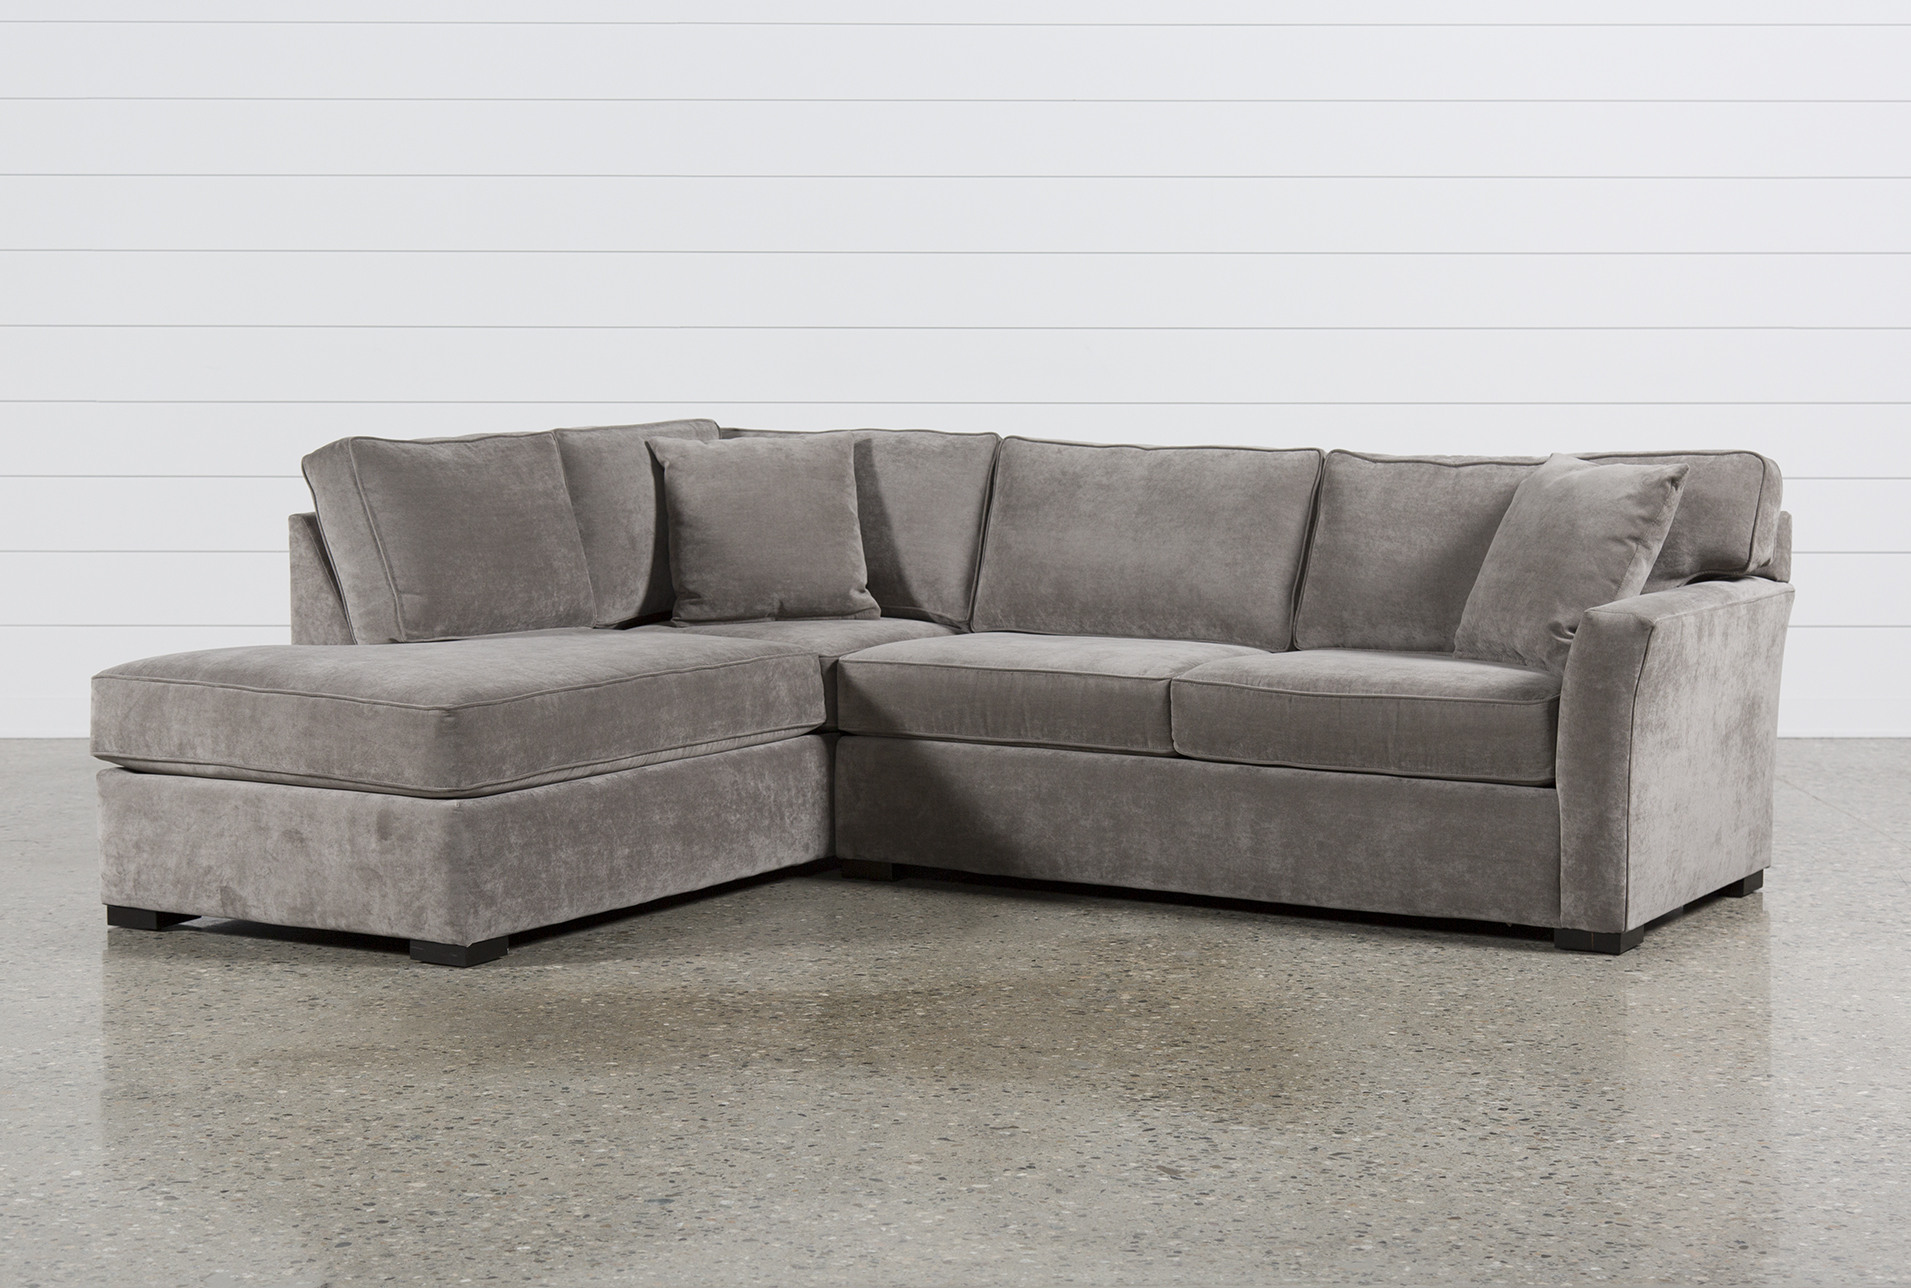 Tips for buying a sectional sleeper couch